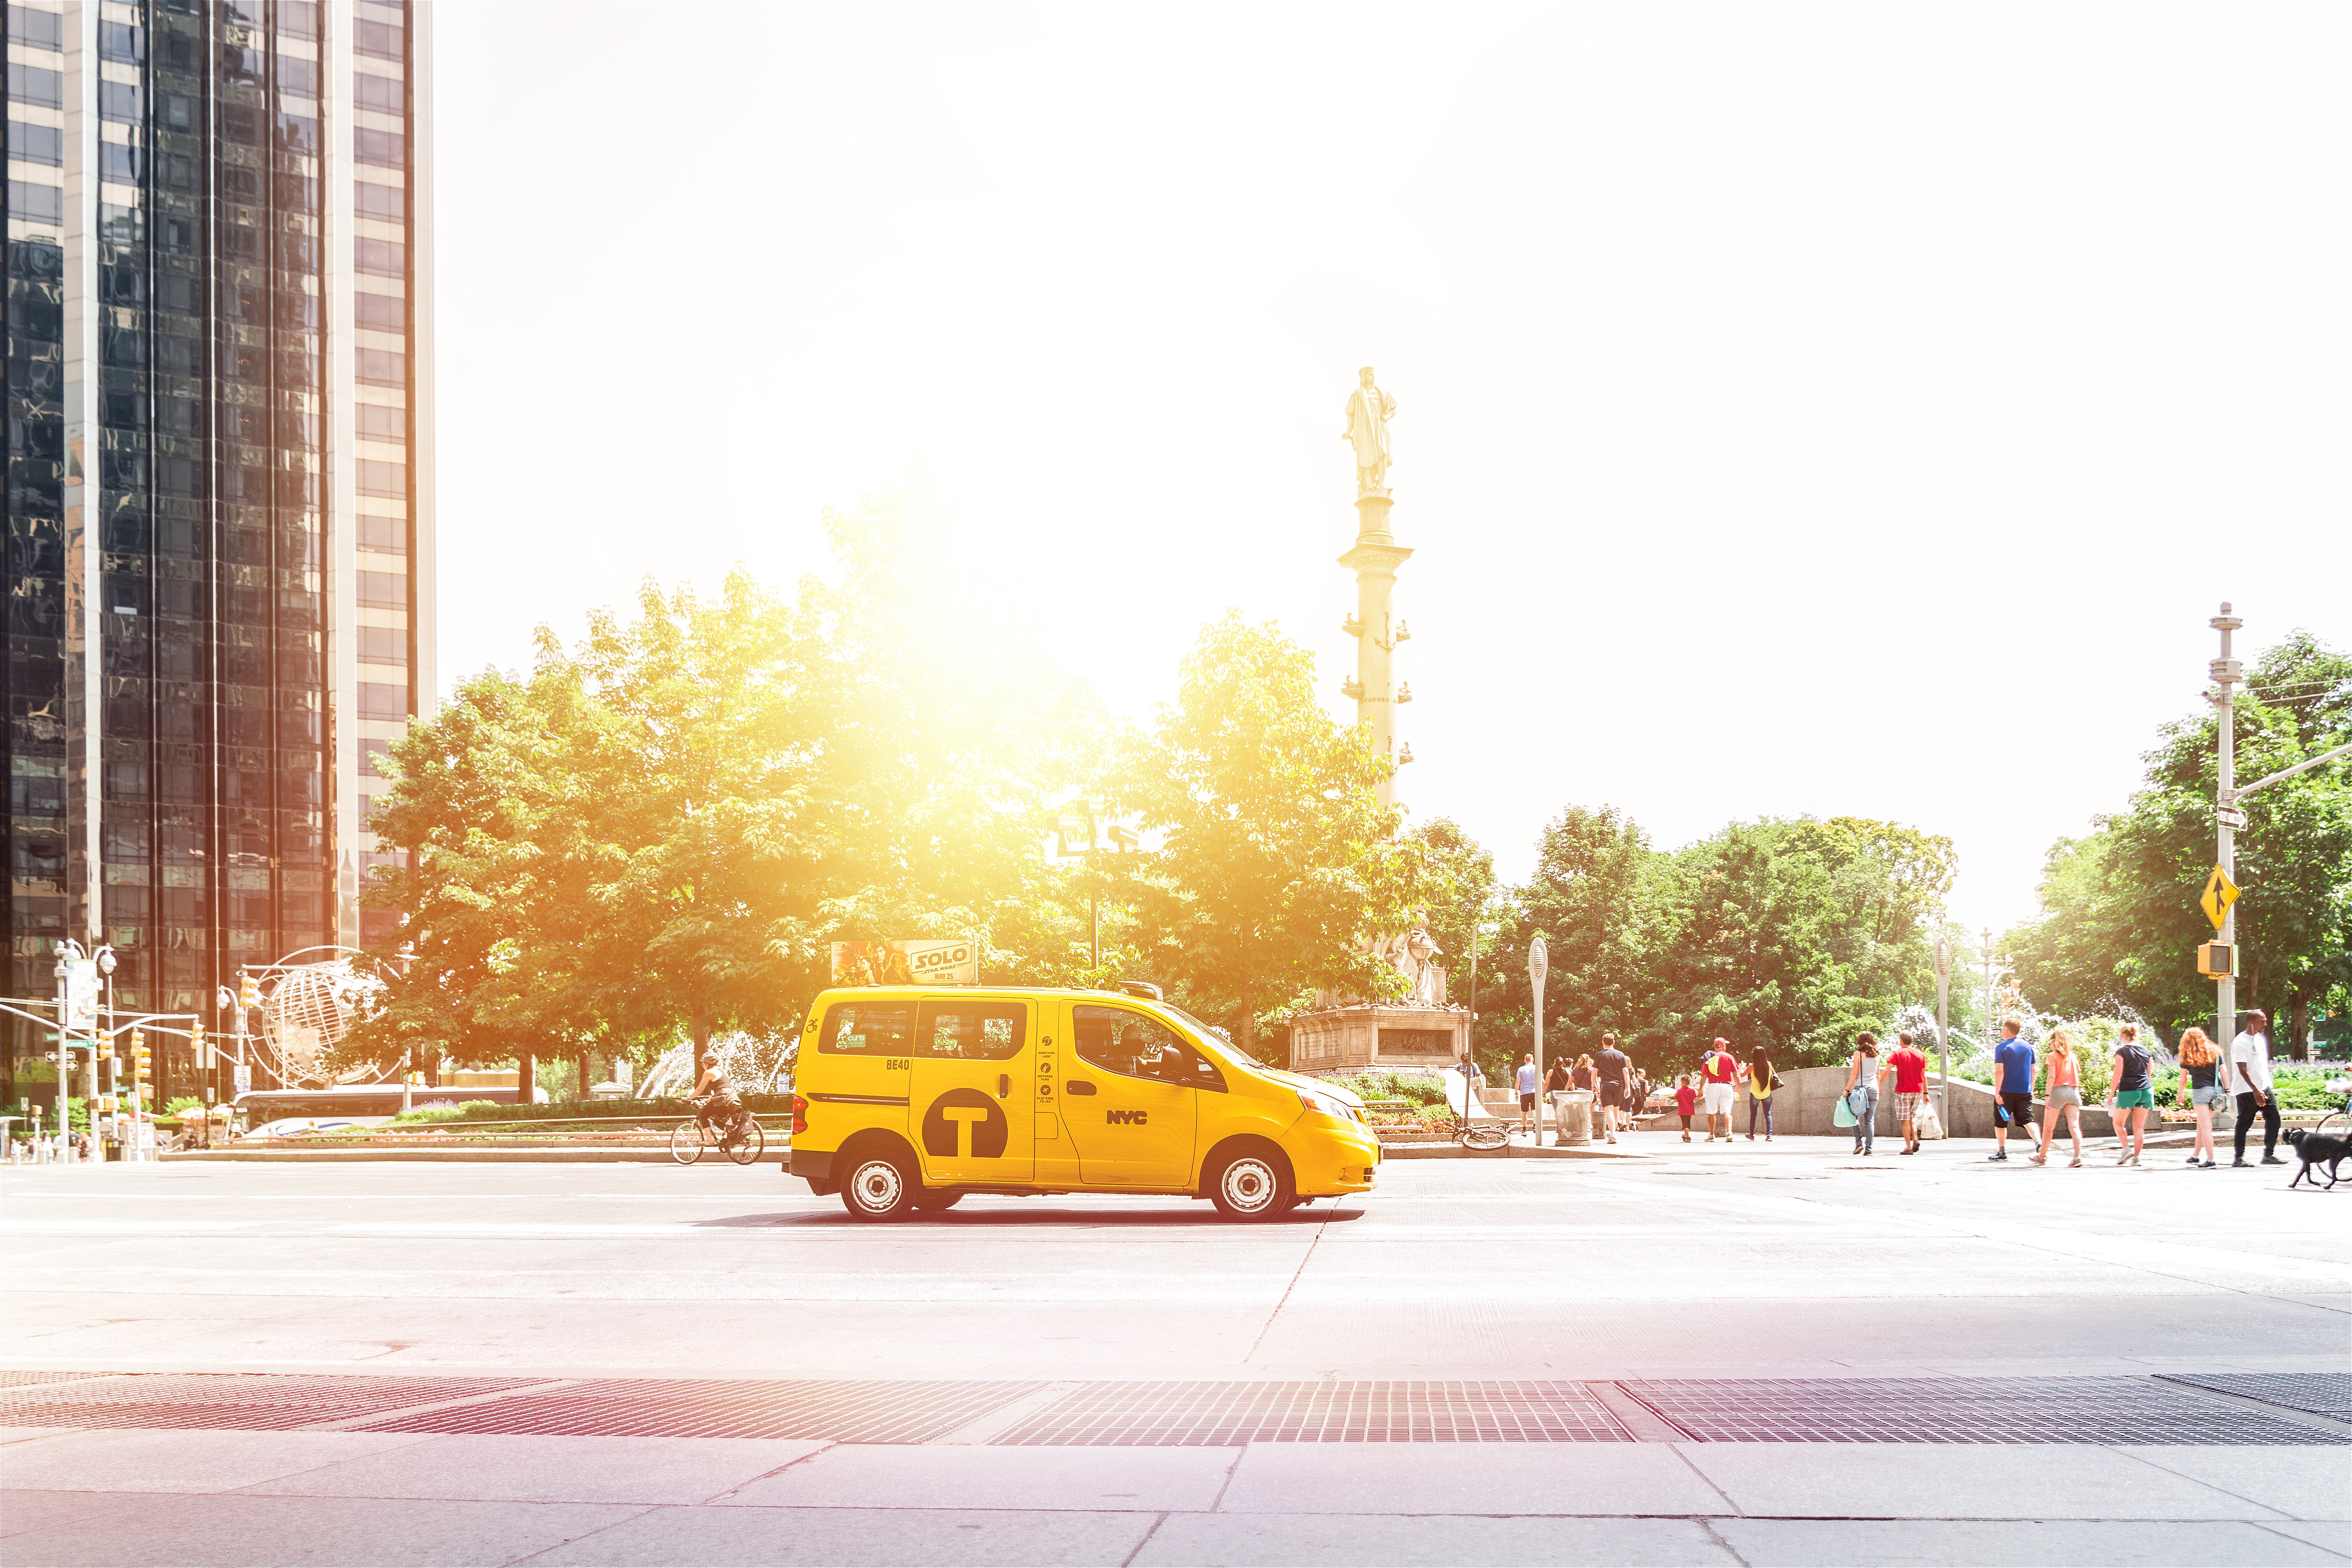 photo of yellow compact van during daytime